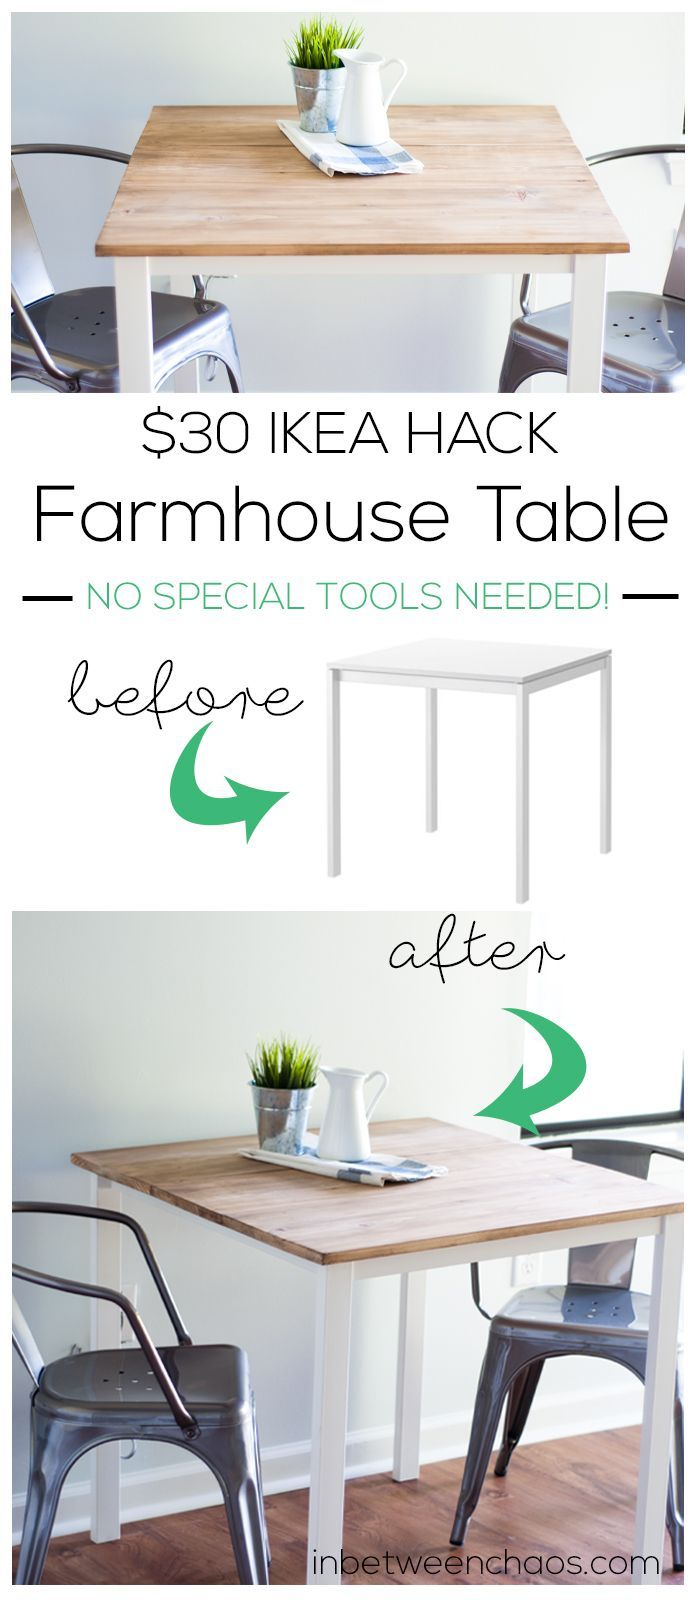 30 IKEA Farmhouse Table Hack   http inbetweenchaos comBest 25  Ikea table hack ideas on Pinterest   Ikea lack hack  Ikea  . Dining Table Ikea Hack. Home Design Ideas